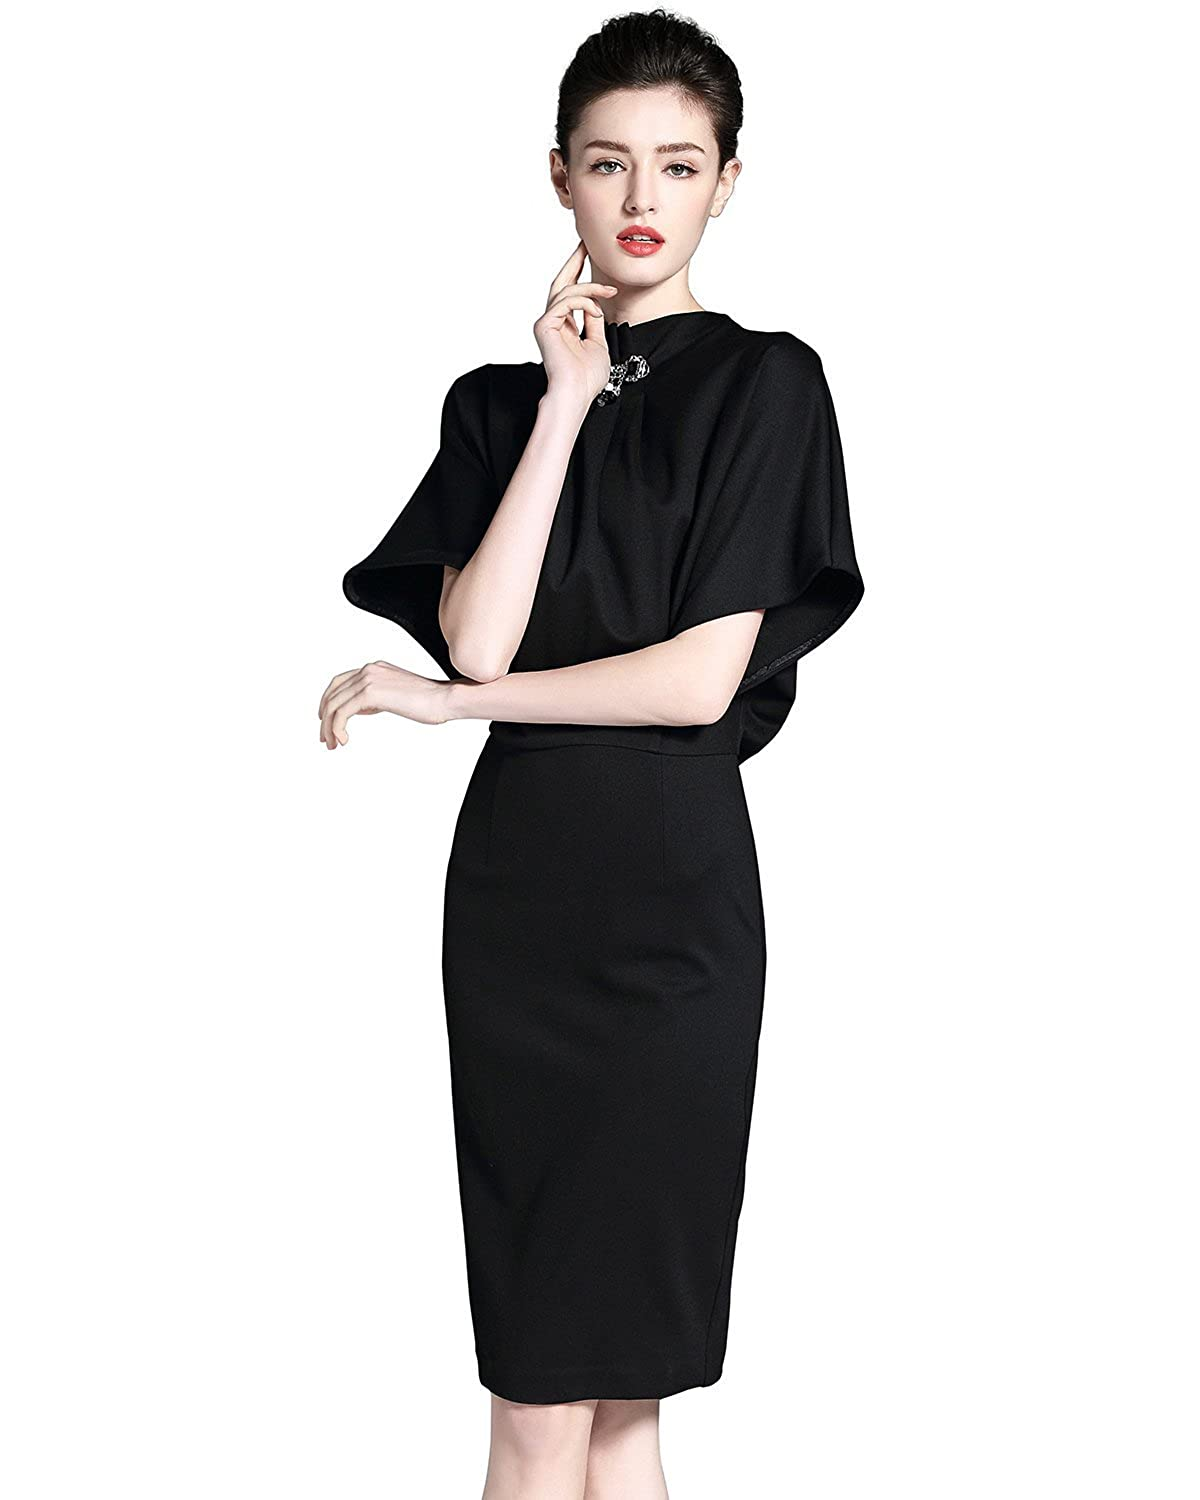 11071d90a11 Burdully Women s Pencil Dress Stand Collar Batwing Sleeve High Waist Knee  Length Elegant Midi Cocktail Dresses at Amazon Women s Clothing store